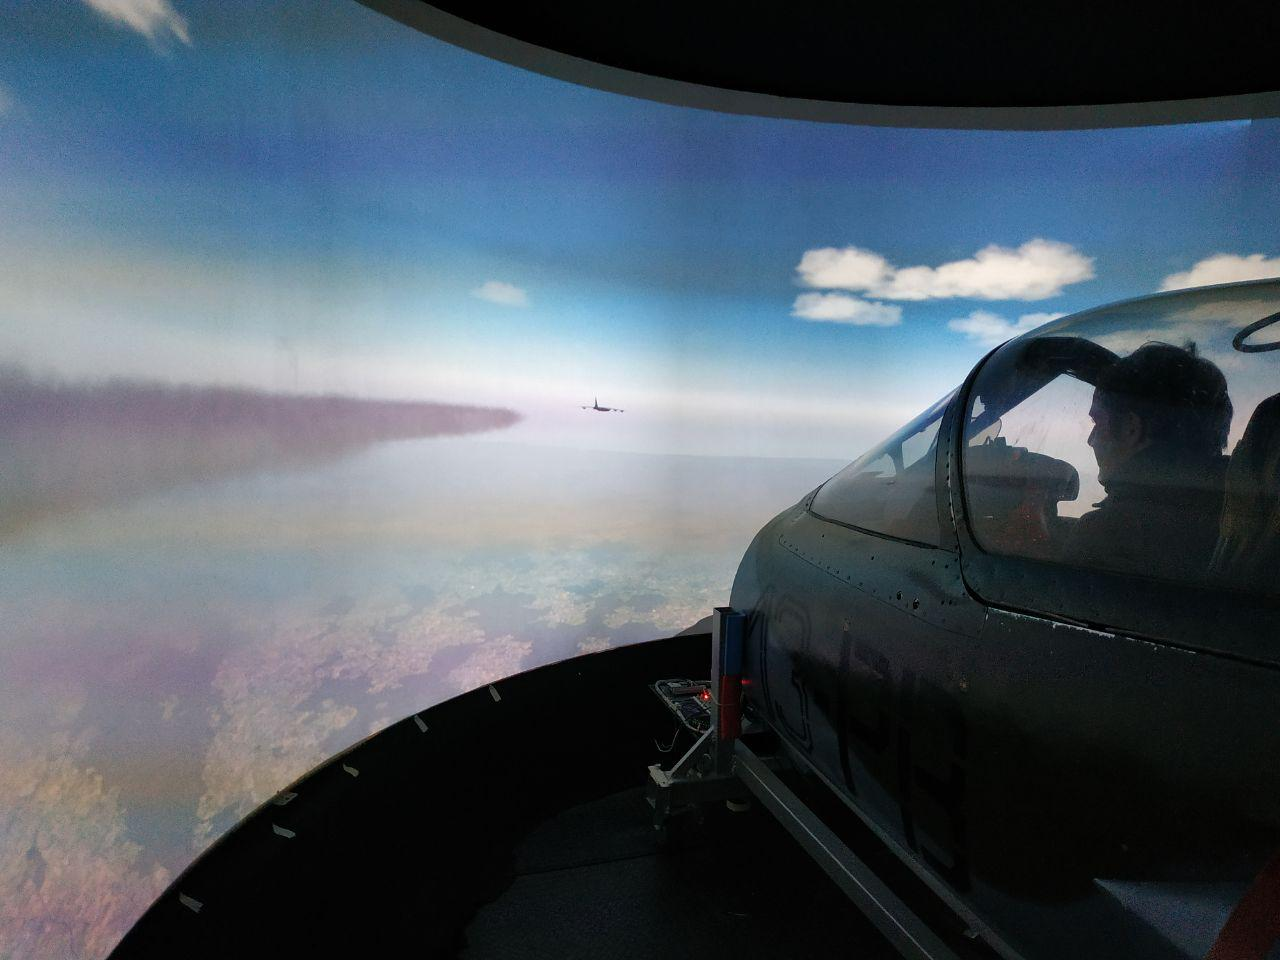 Mirage Kampfjet Simulator